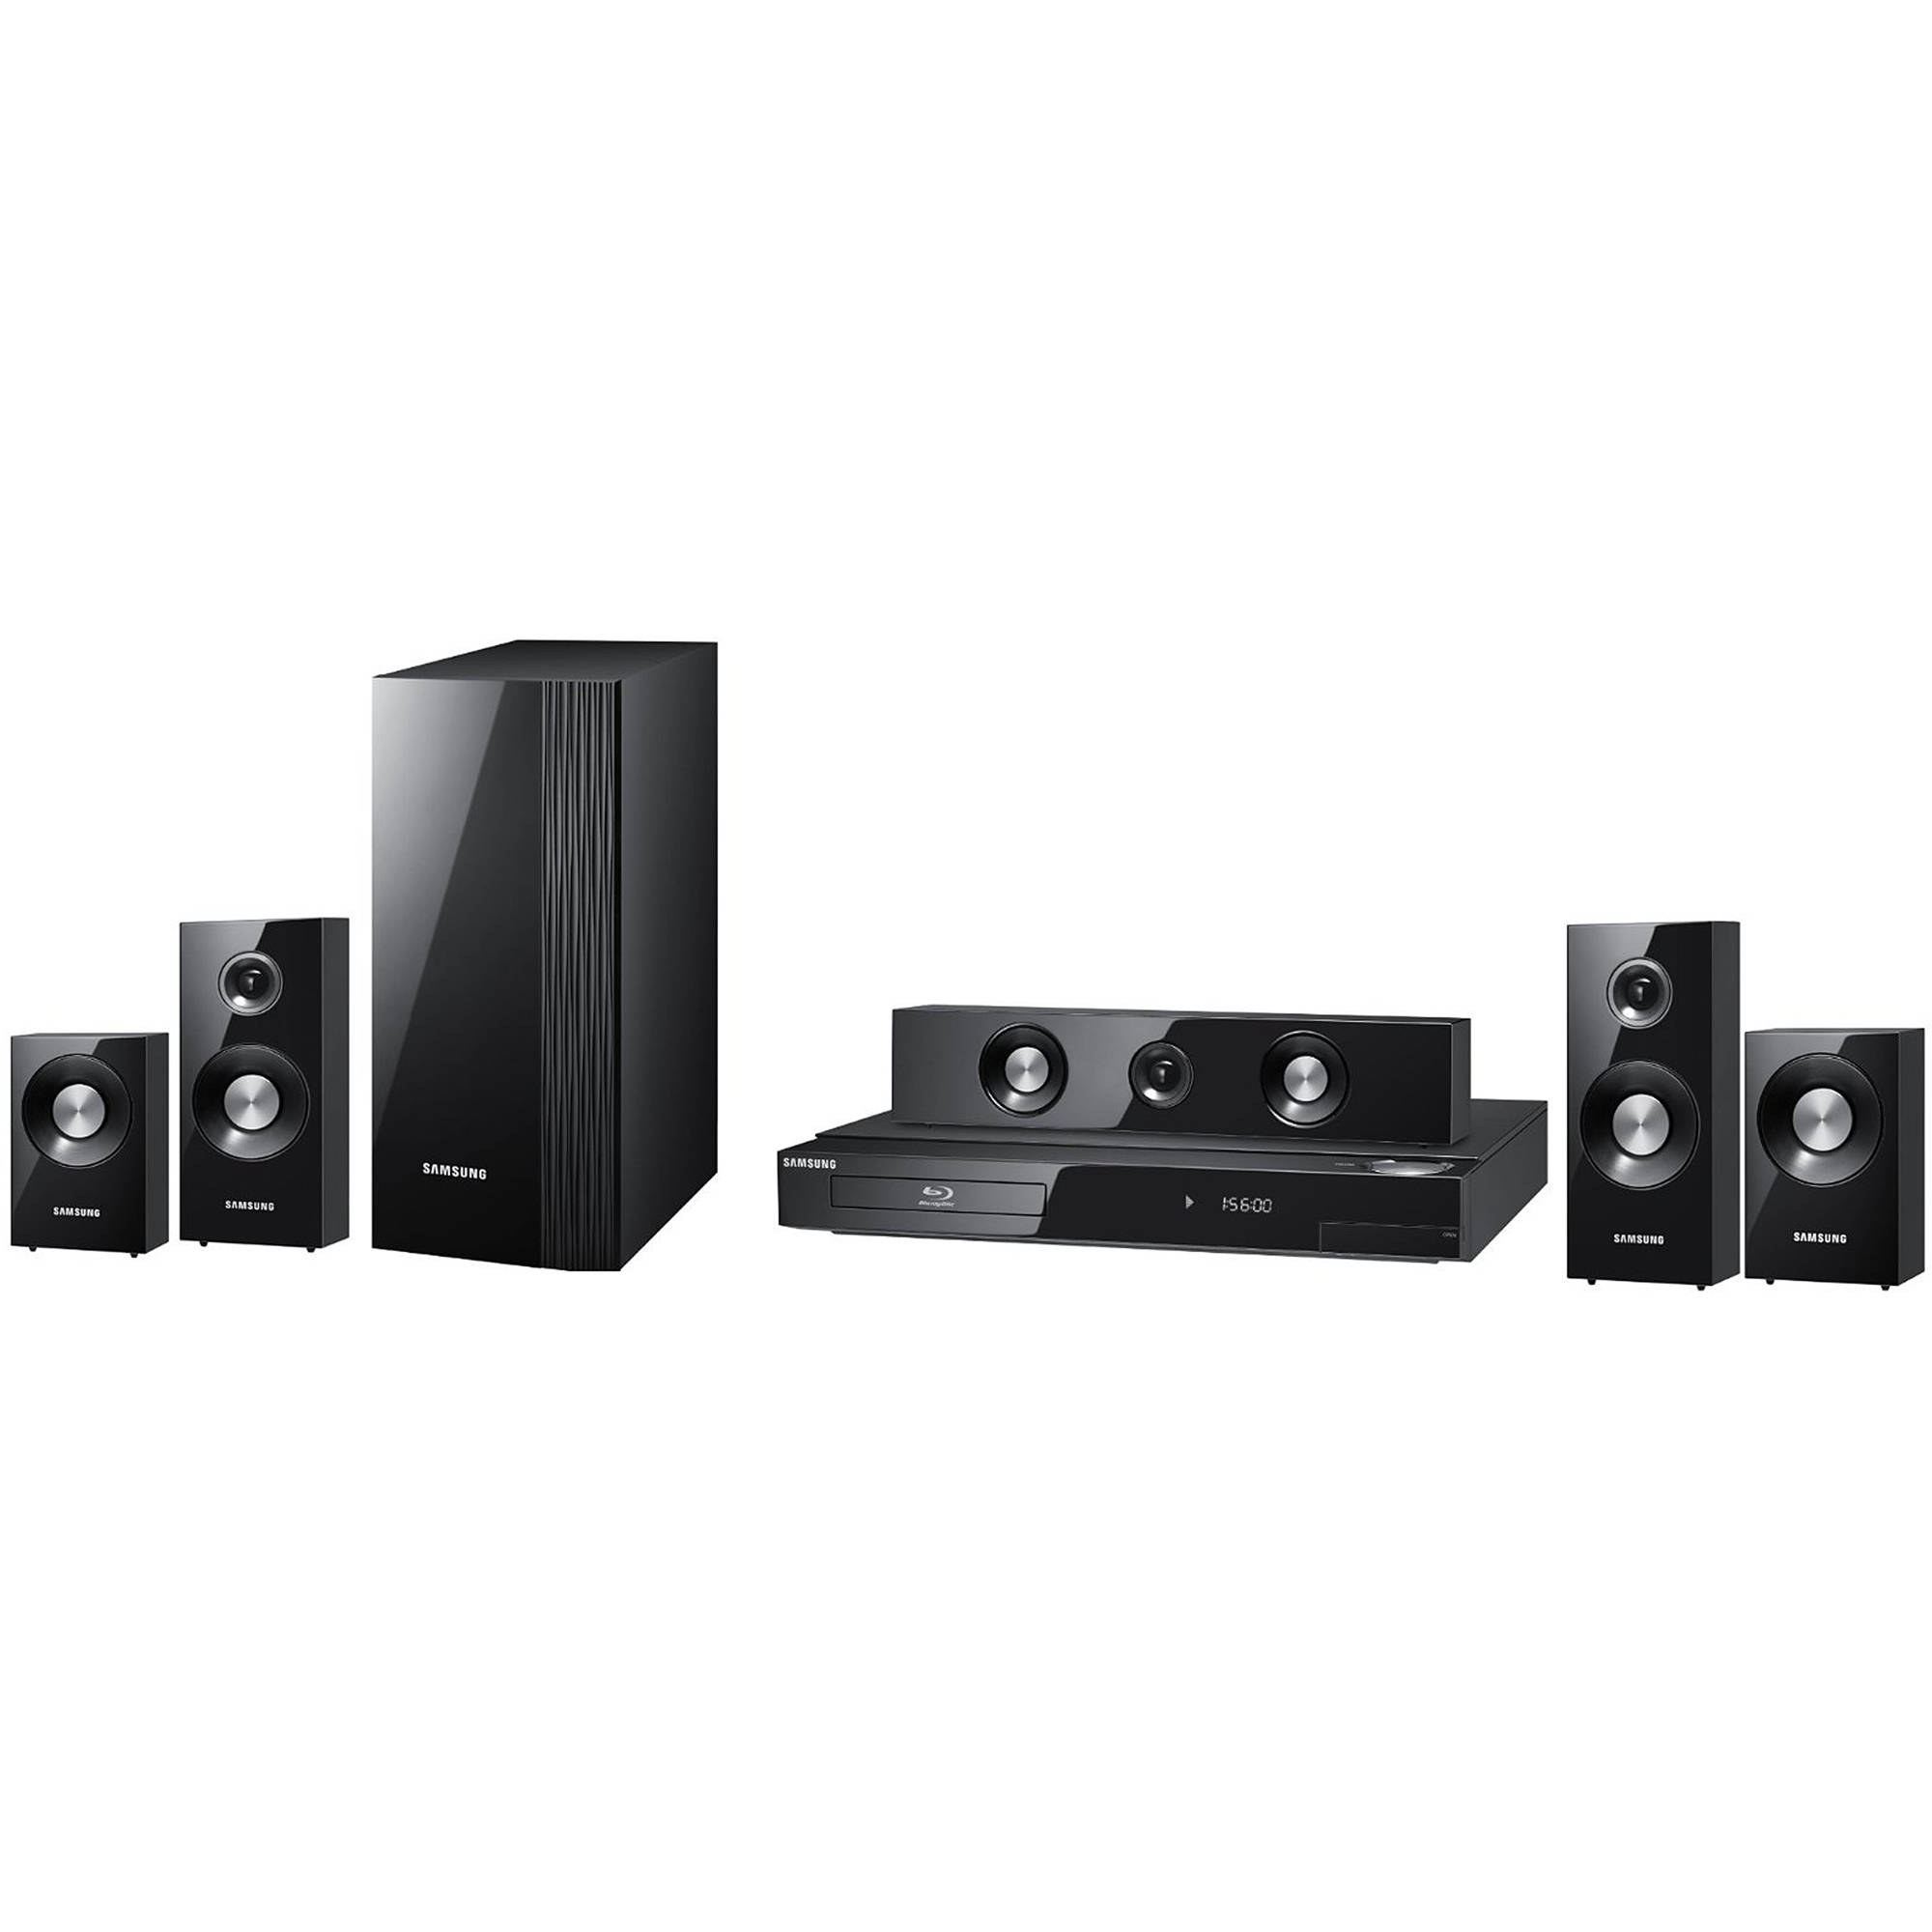 samsung ht c5500 5 1 channel blu ray home theater system. Black Bedroom Furniture Sets. Home Design Ideas